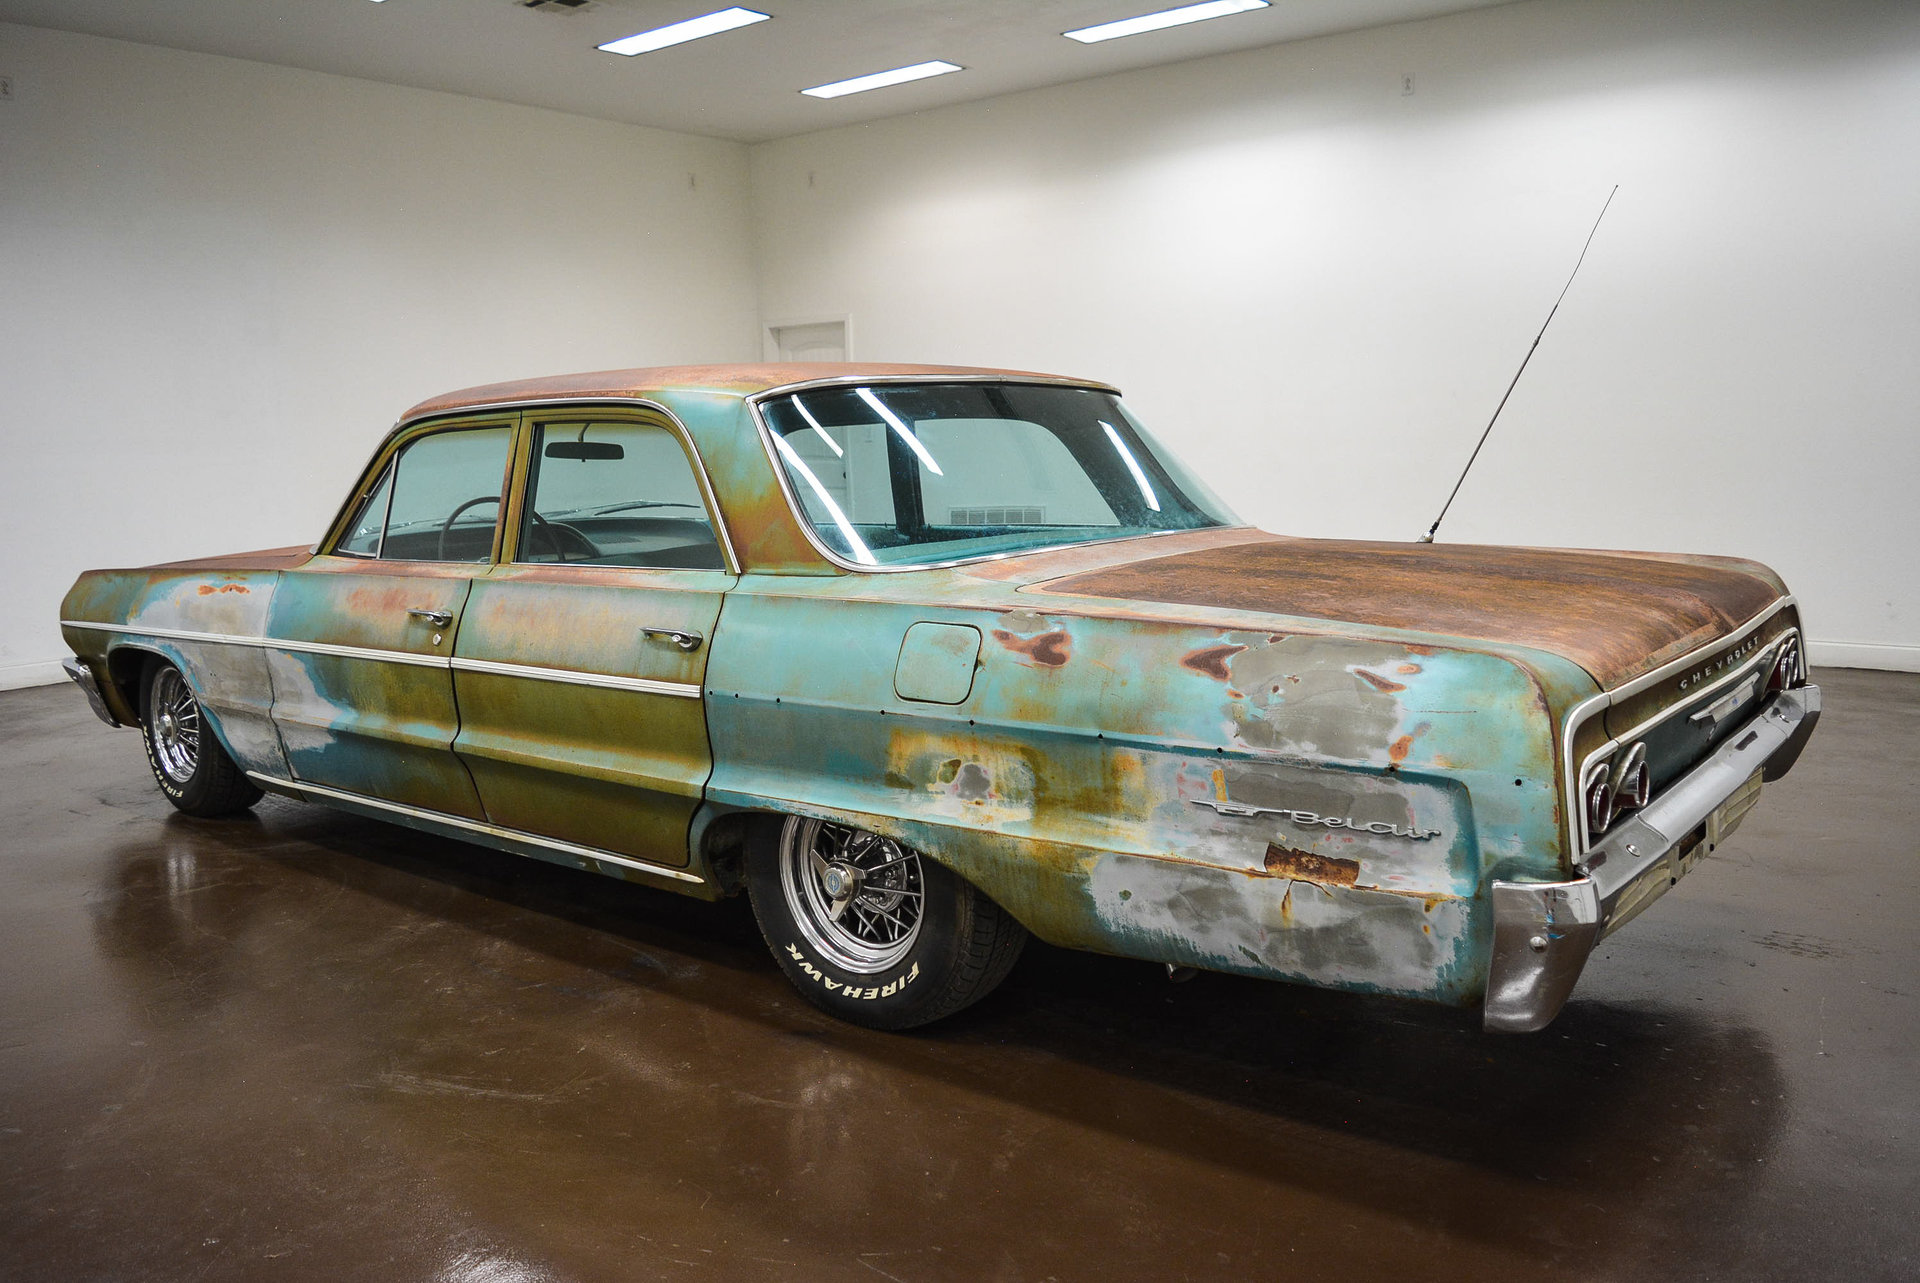 1964 Chevrolet Bel Air Classic Car Liquidators in